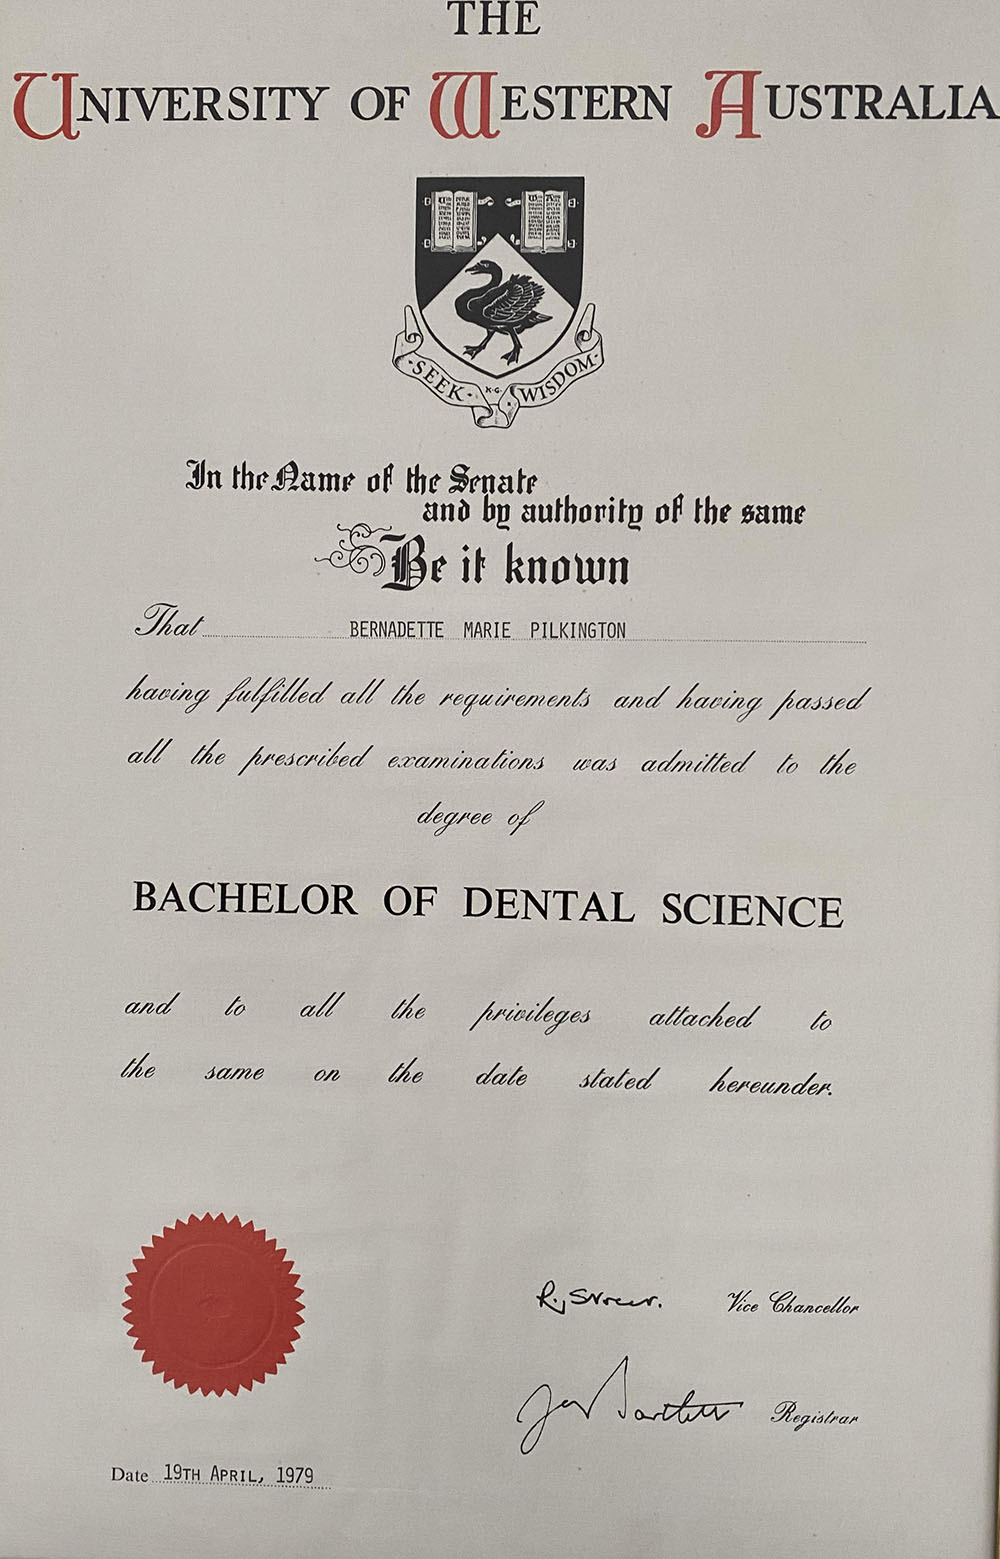 A Bachelor of Dental Science degree certificate awarded to Bernadette Pilkington.